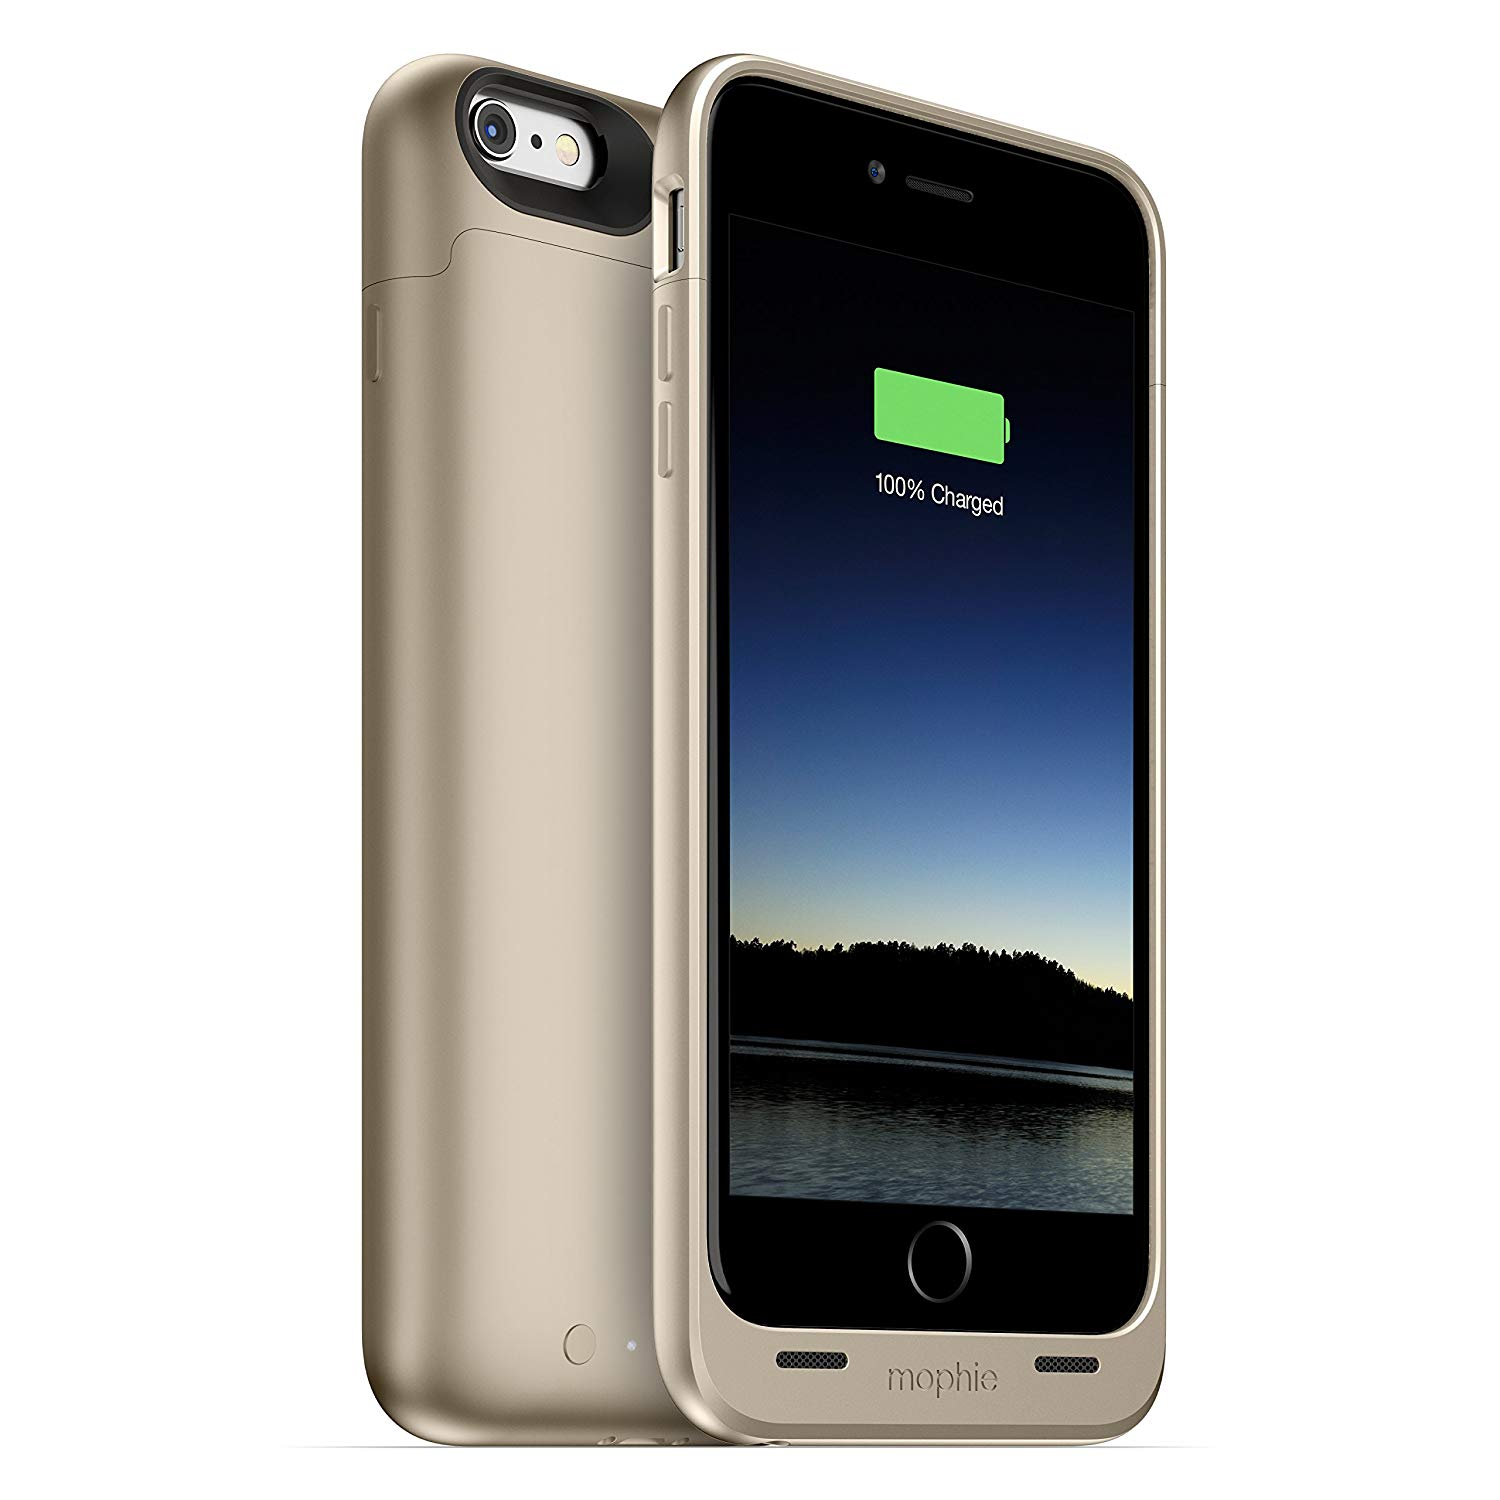 size 40 e659b a6326 Details about mophie juice pack 2,600mAh Battery Case for iPhone 6s PLUS &  iPhone 6 PLUS